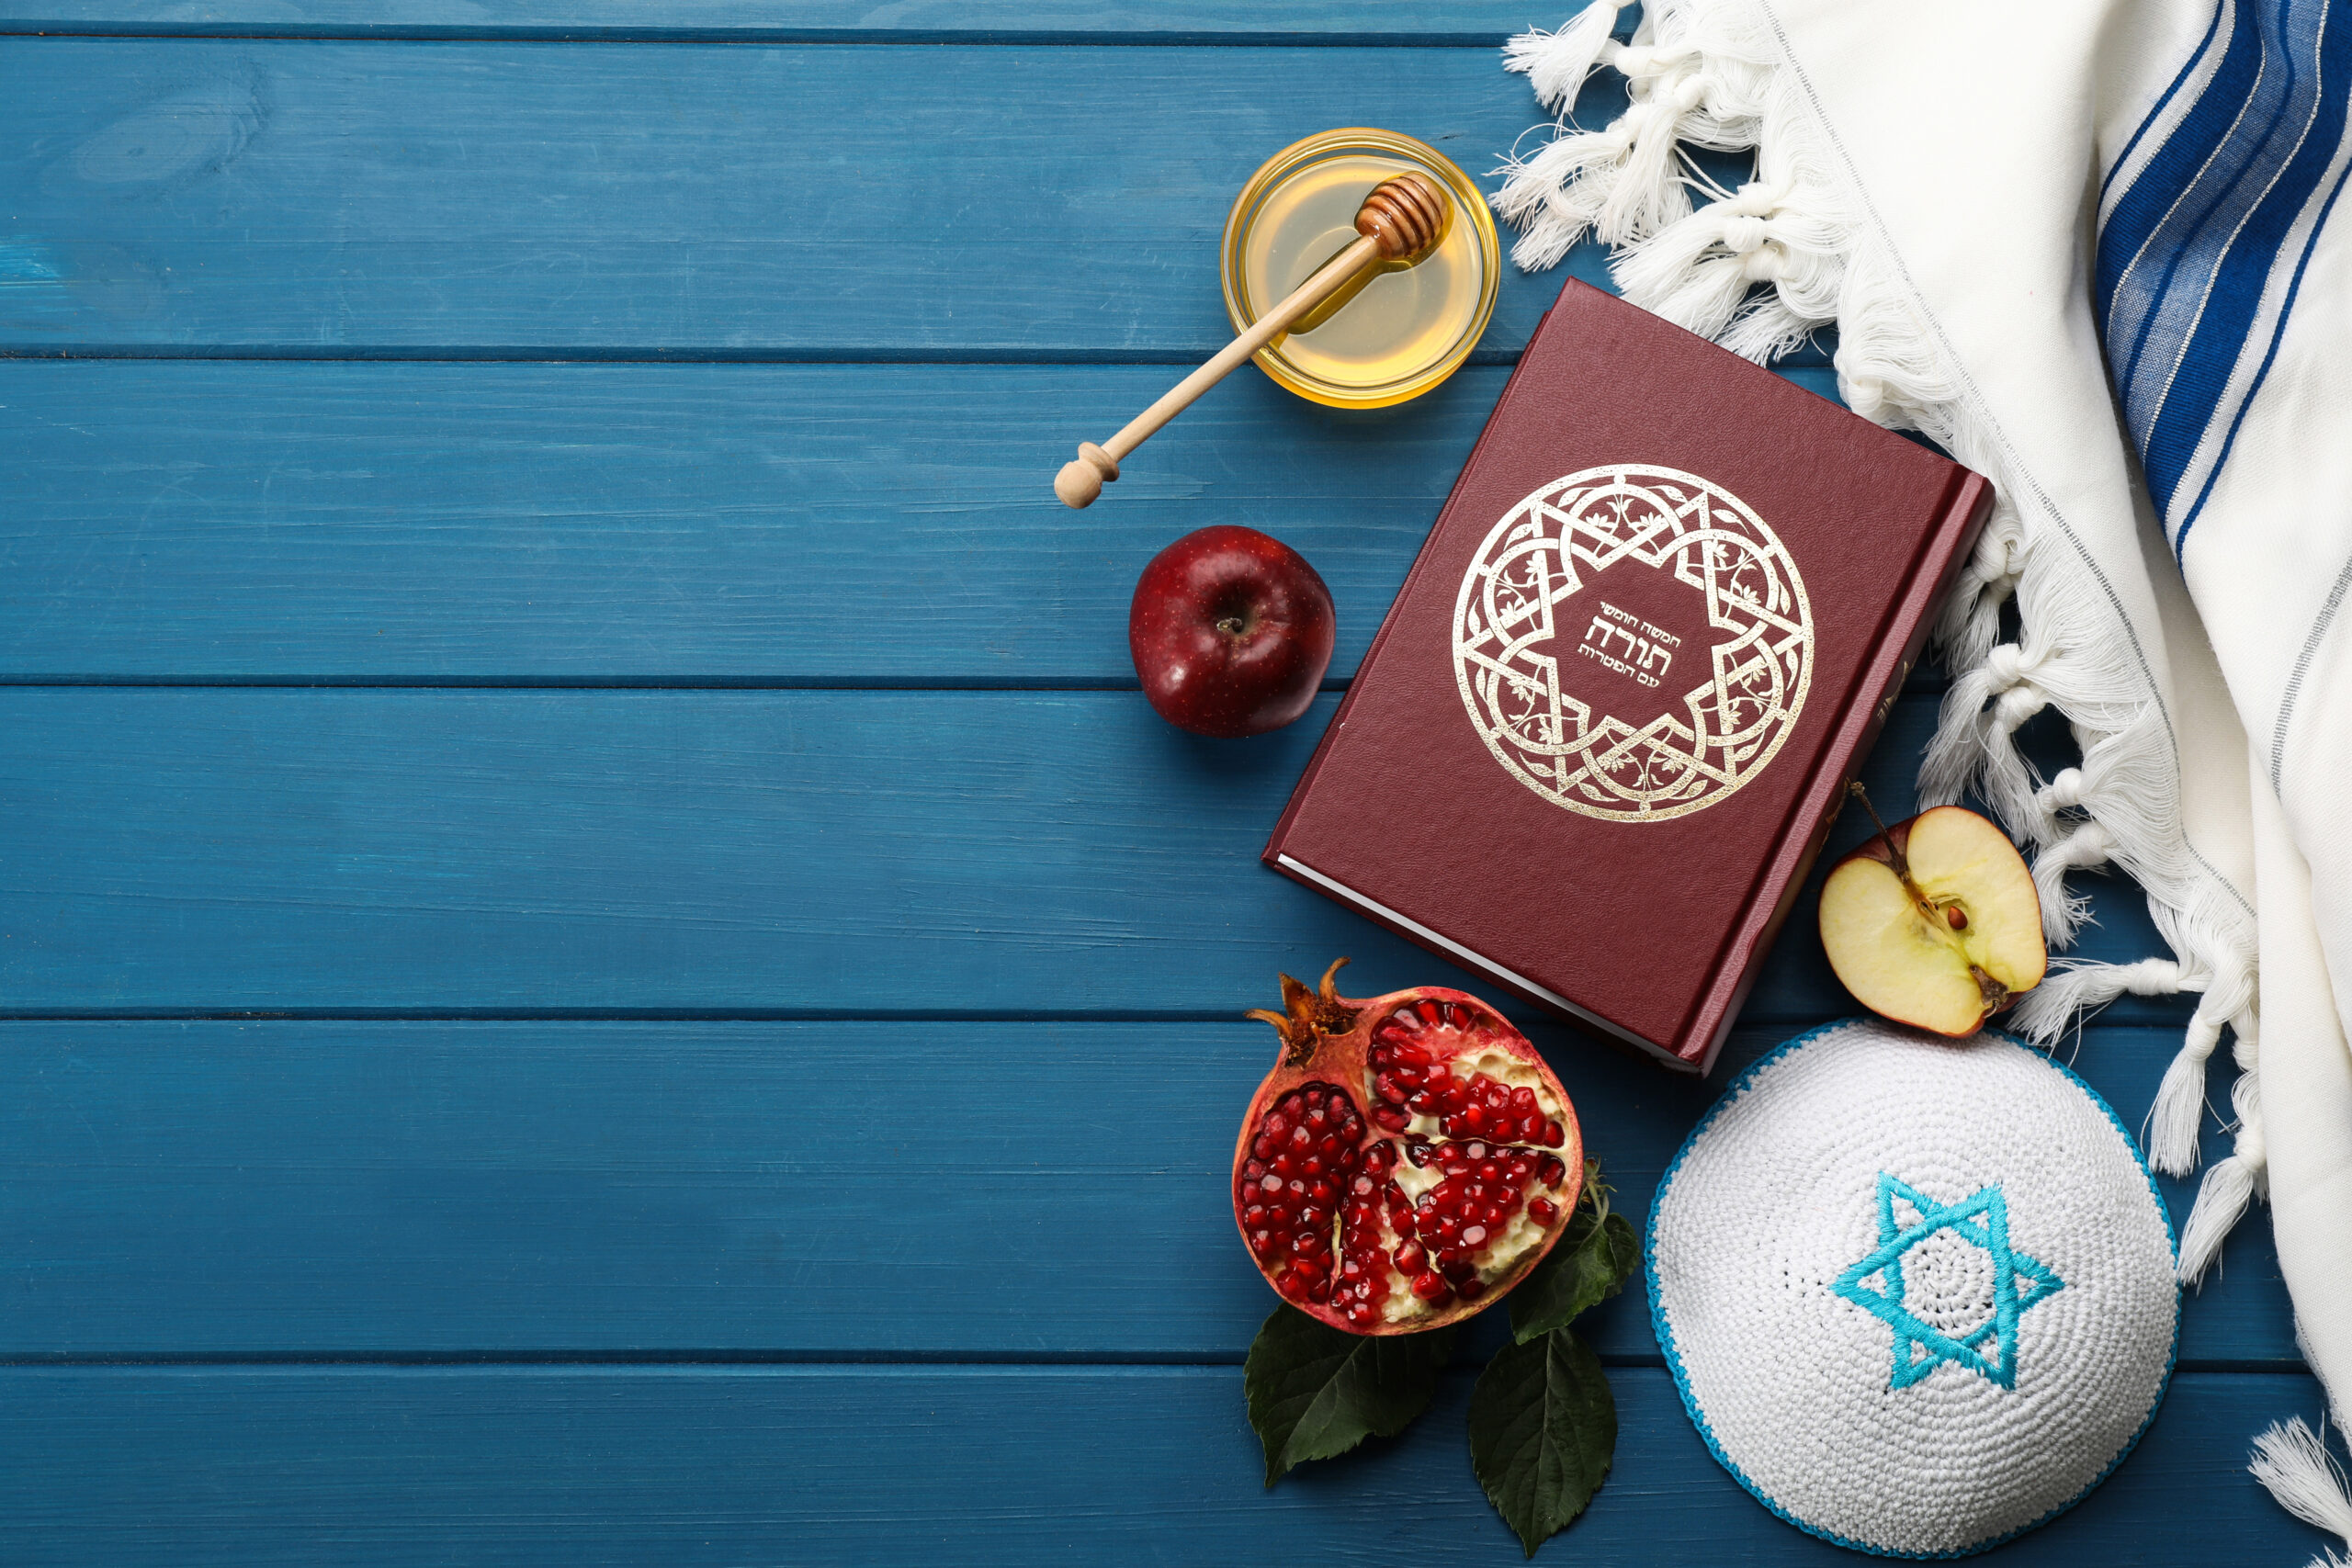 Flat lay composition with Rosh Hashanah holiday attributes on blue wooden table. Torah book with text in hebrew